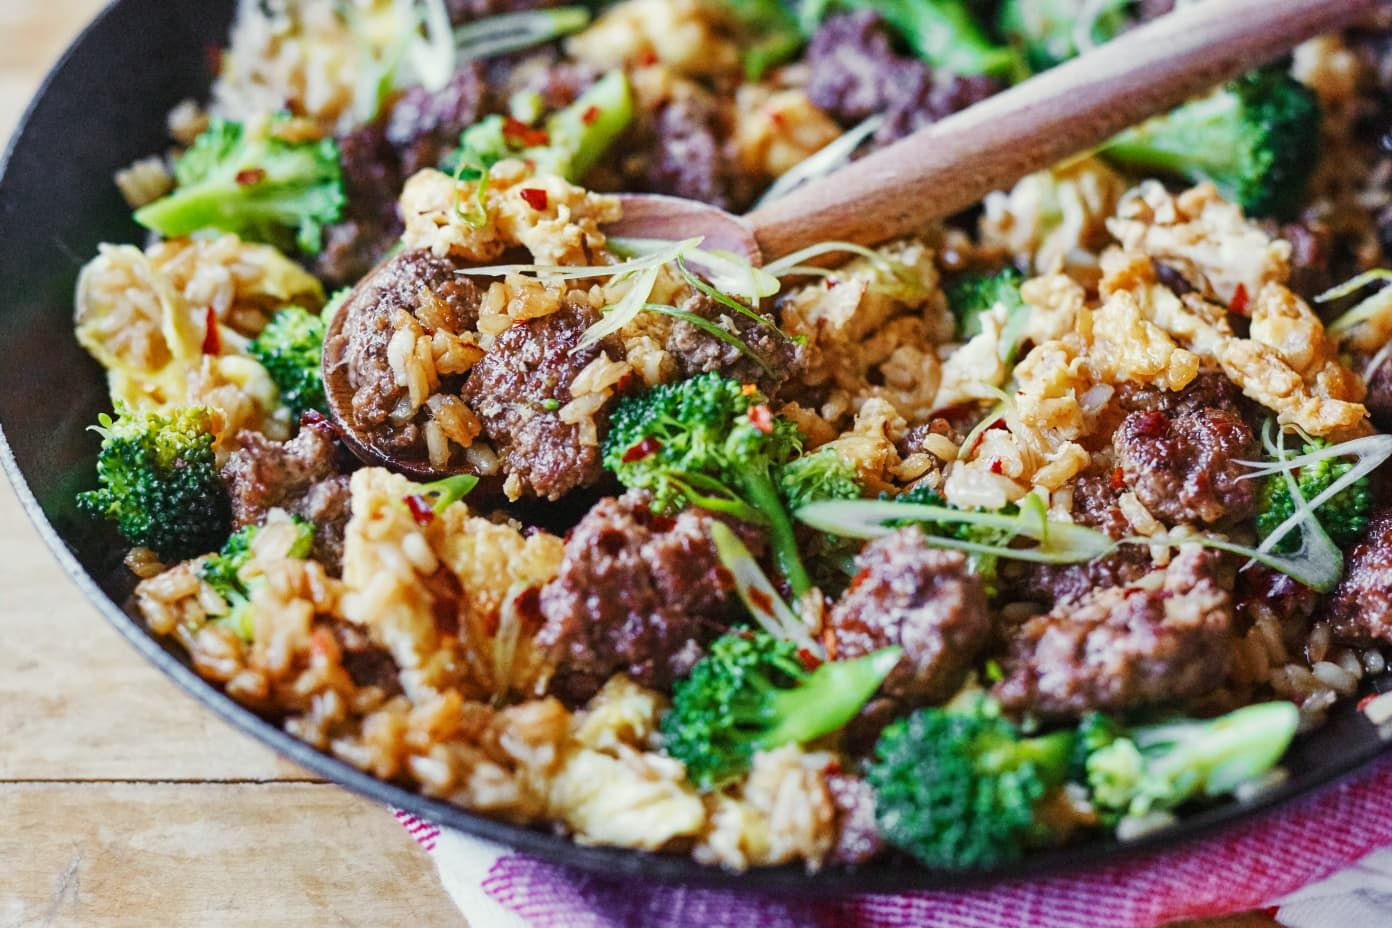 Recipe Beef And Broccoli Fried Rice Recipe In 2020 Broccoli Beef Fried Rice Ground Beef And Broccoli